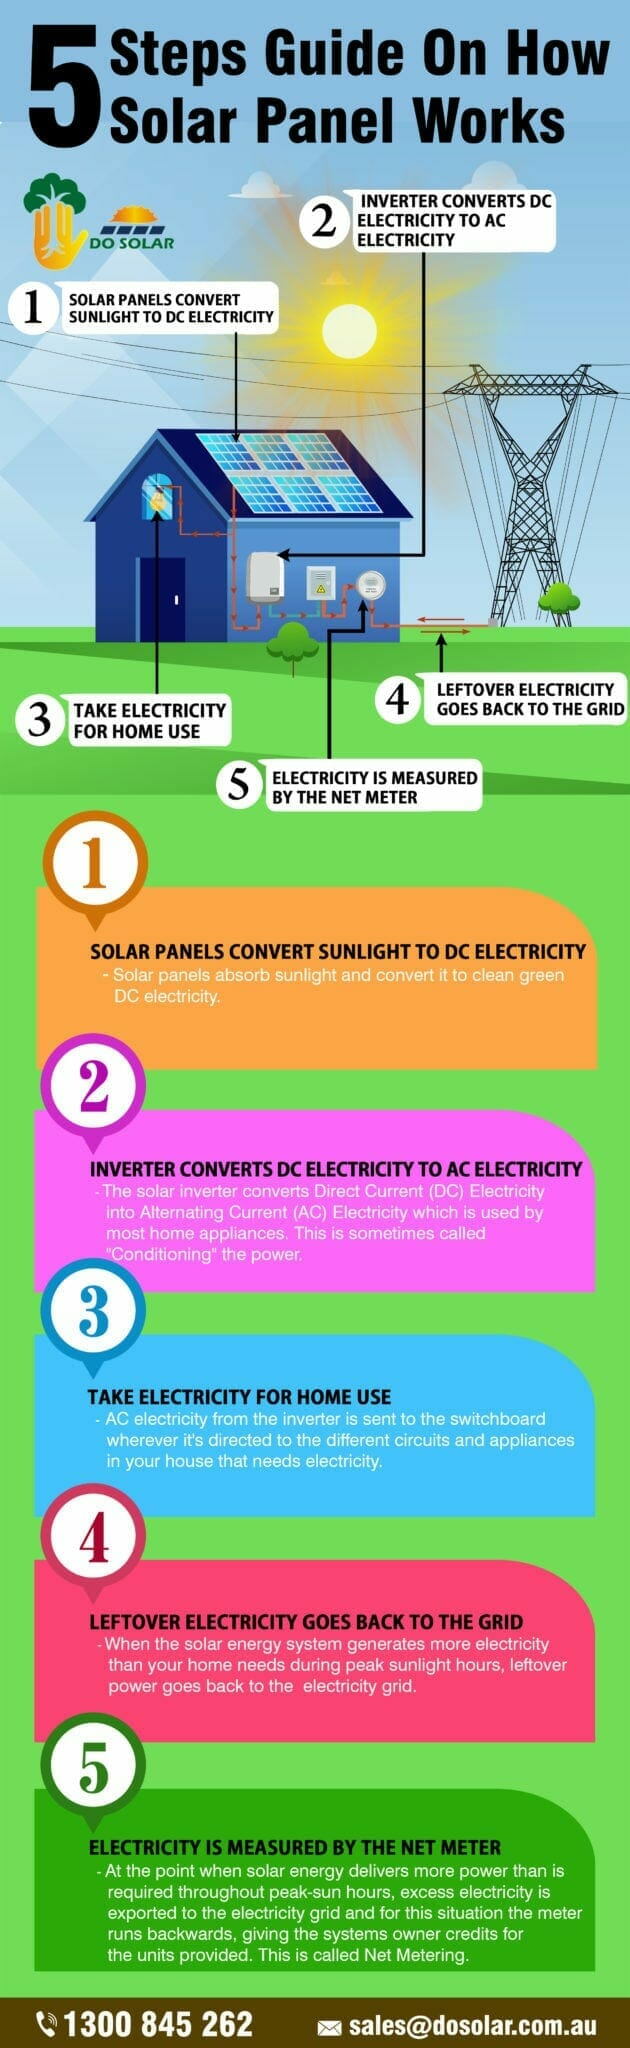 5 Steps Guide on How Solar Panel Works